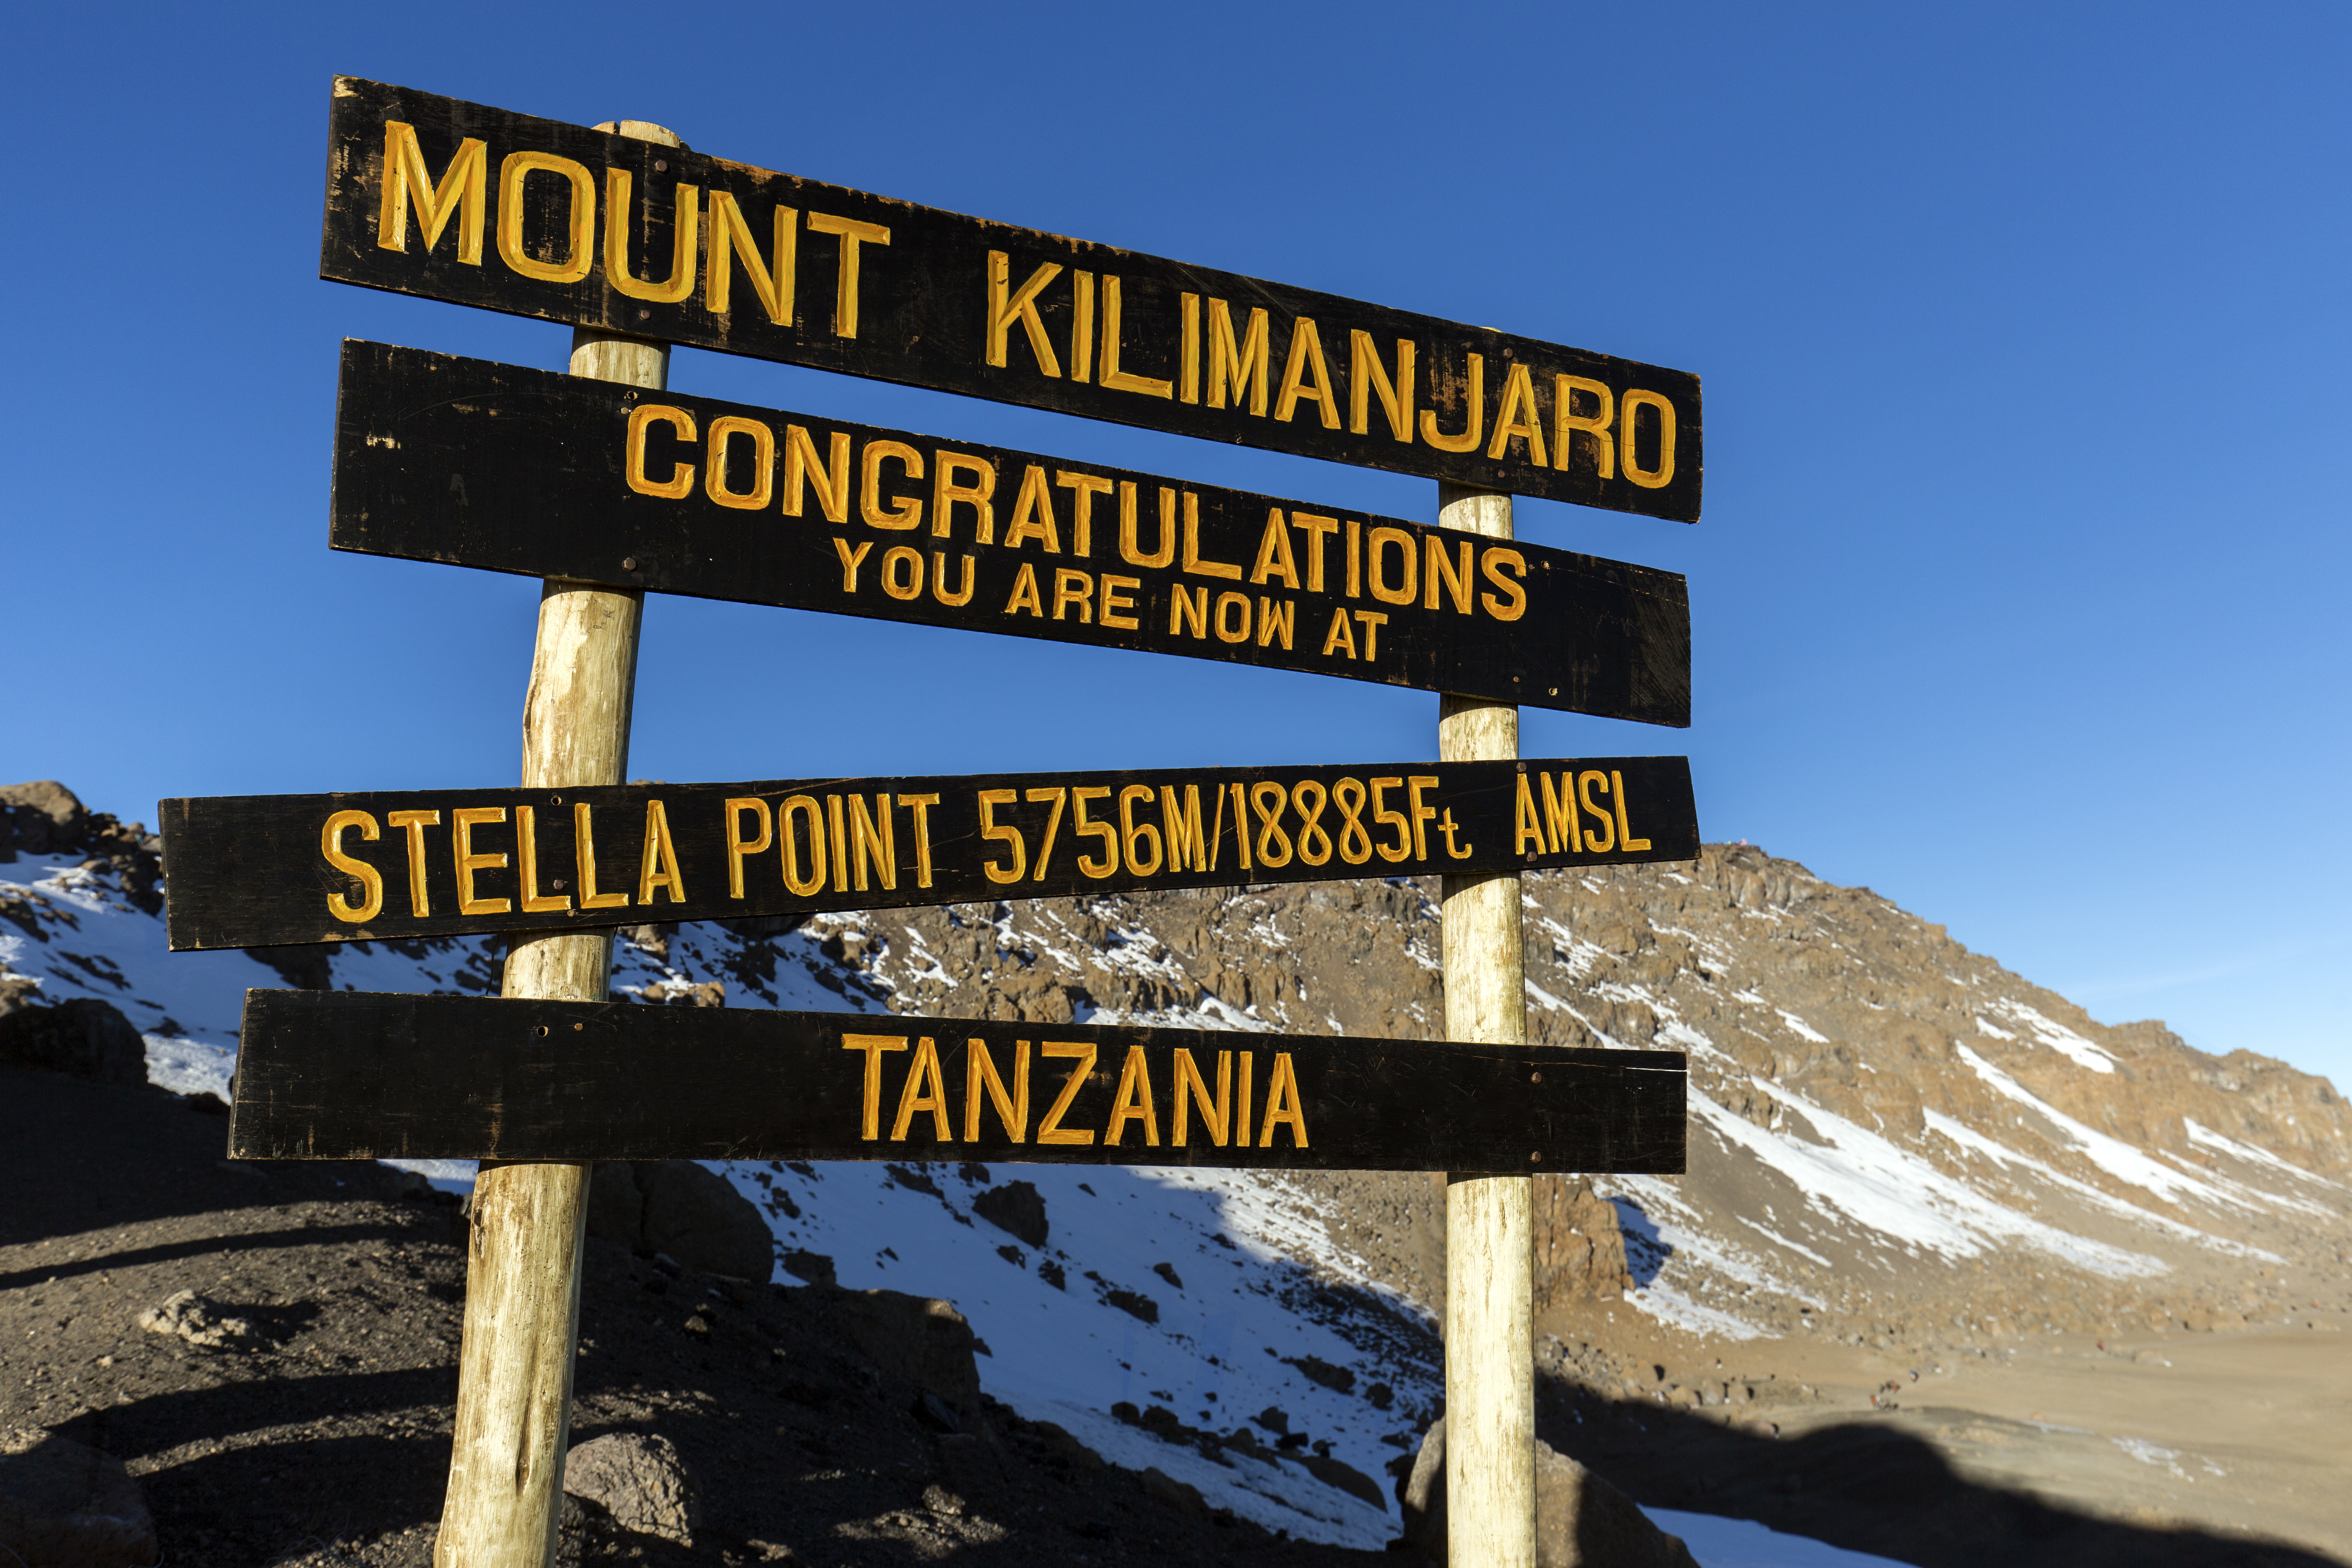 Stella Point on Mount Kilimanjaro in Tanzania, Africa